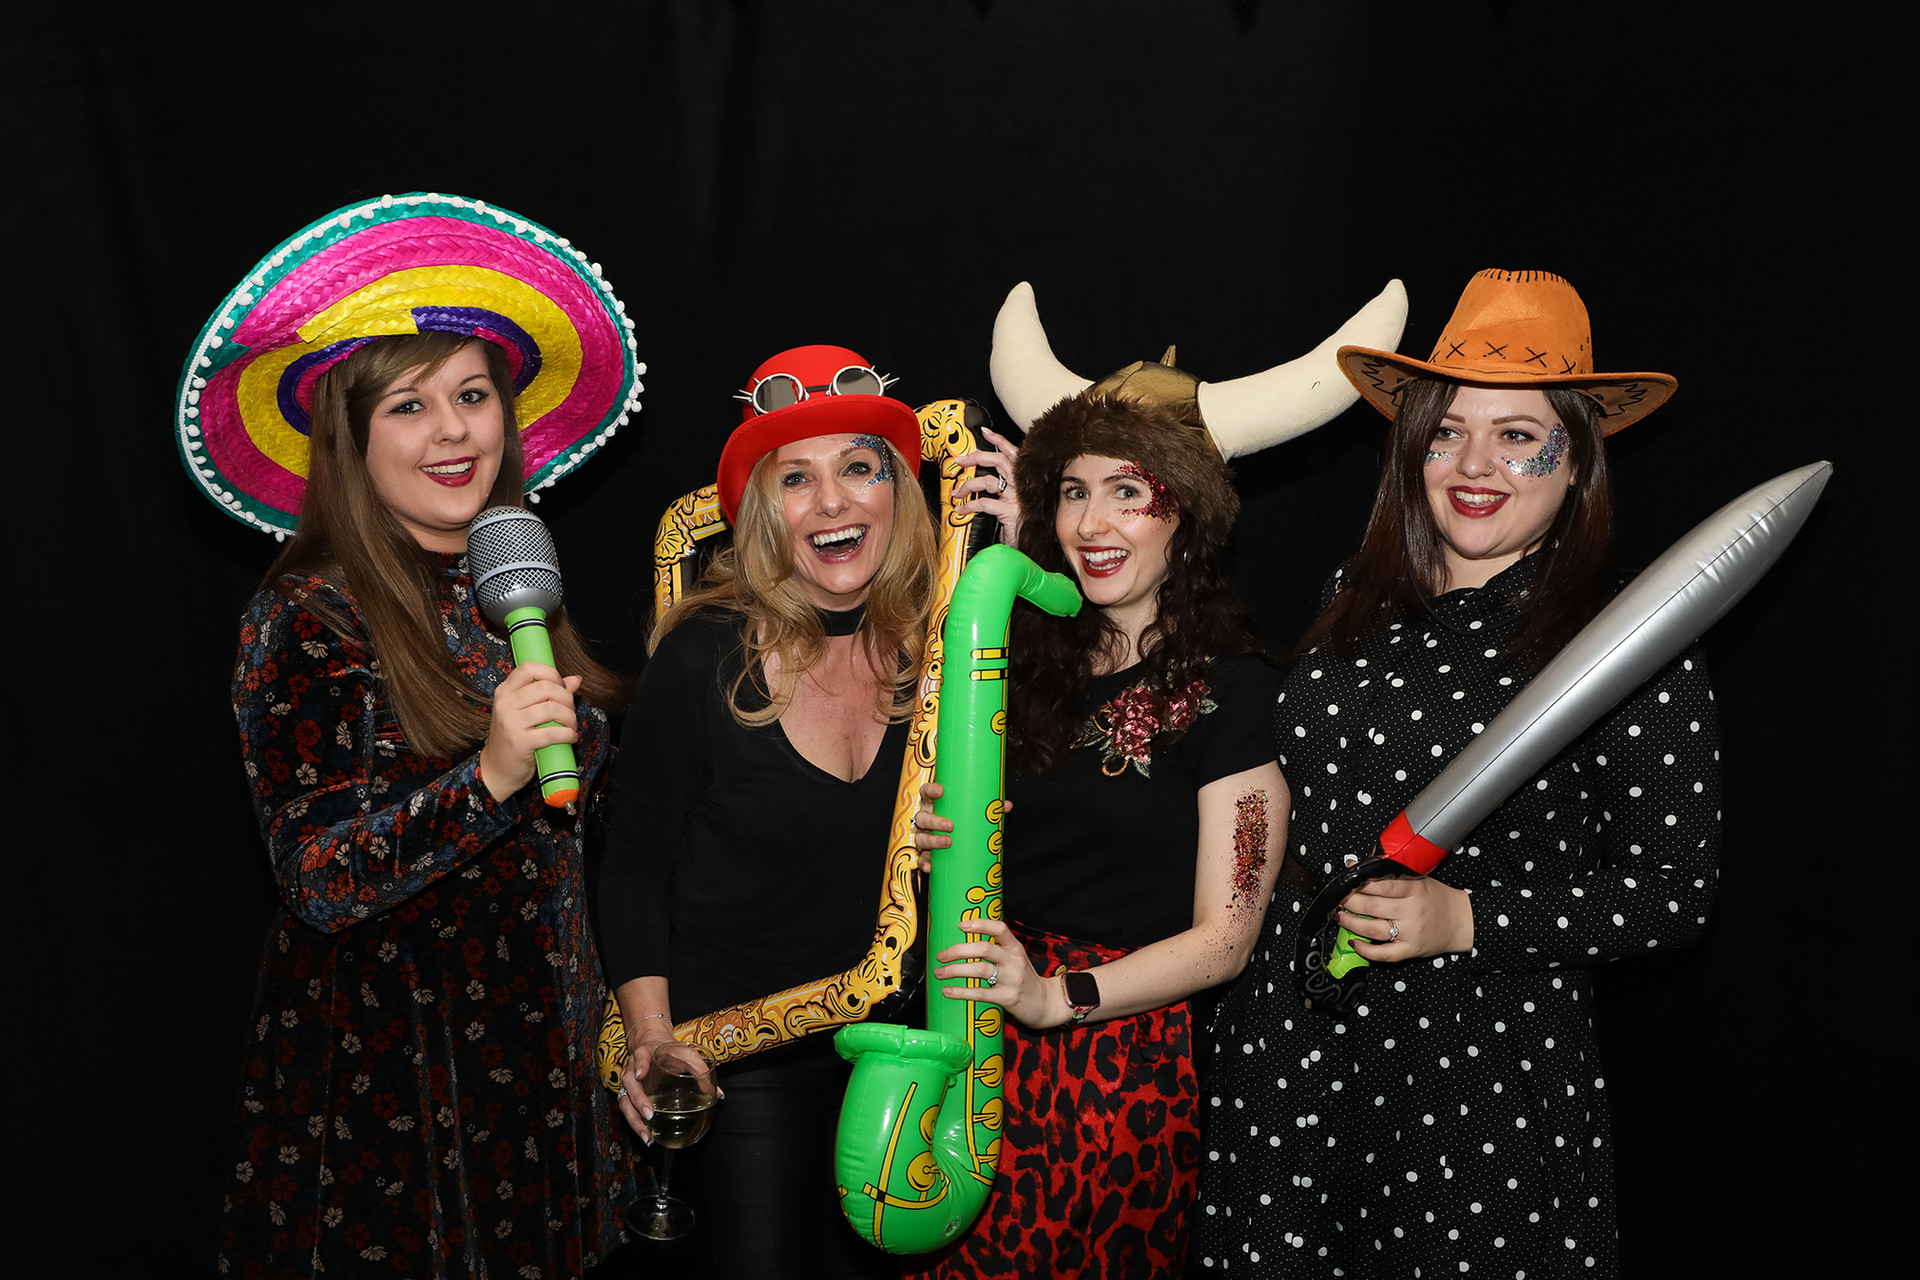 photo-booth-hire-cheshire-001.jpg